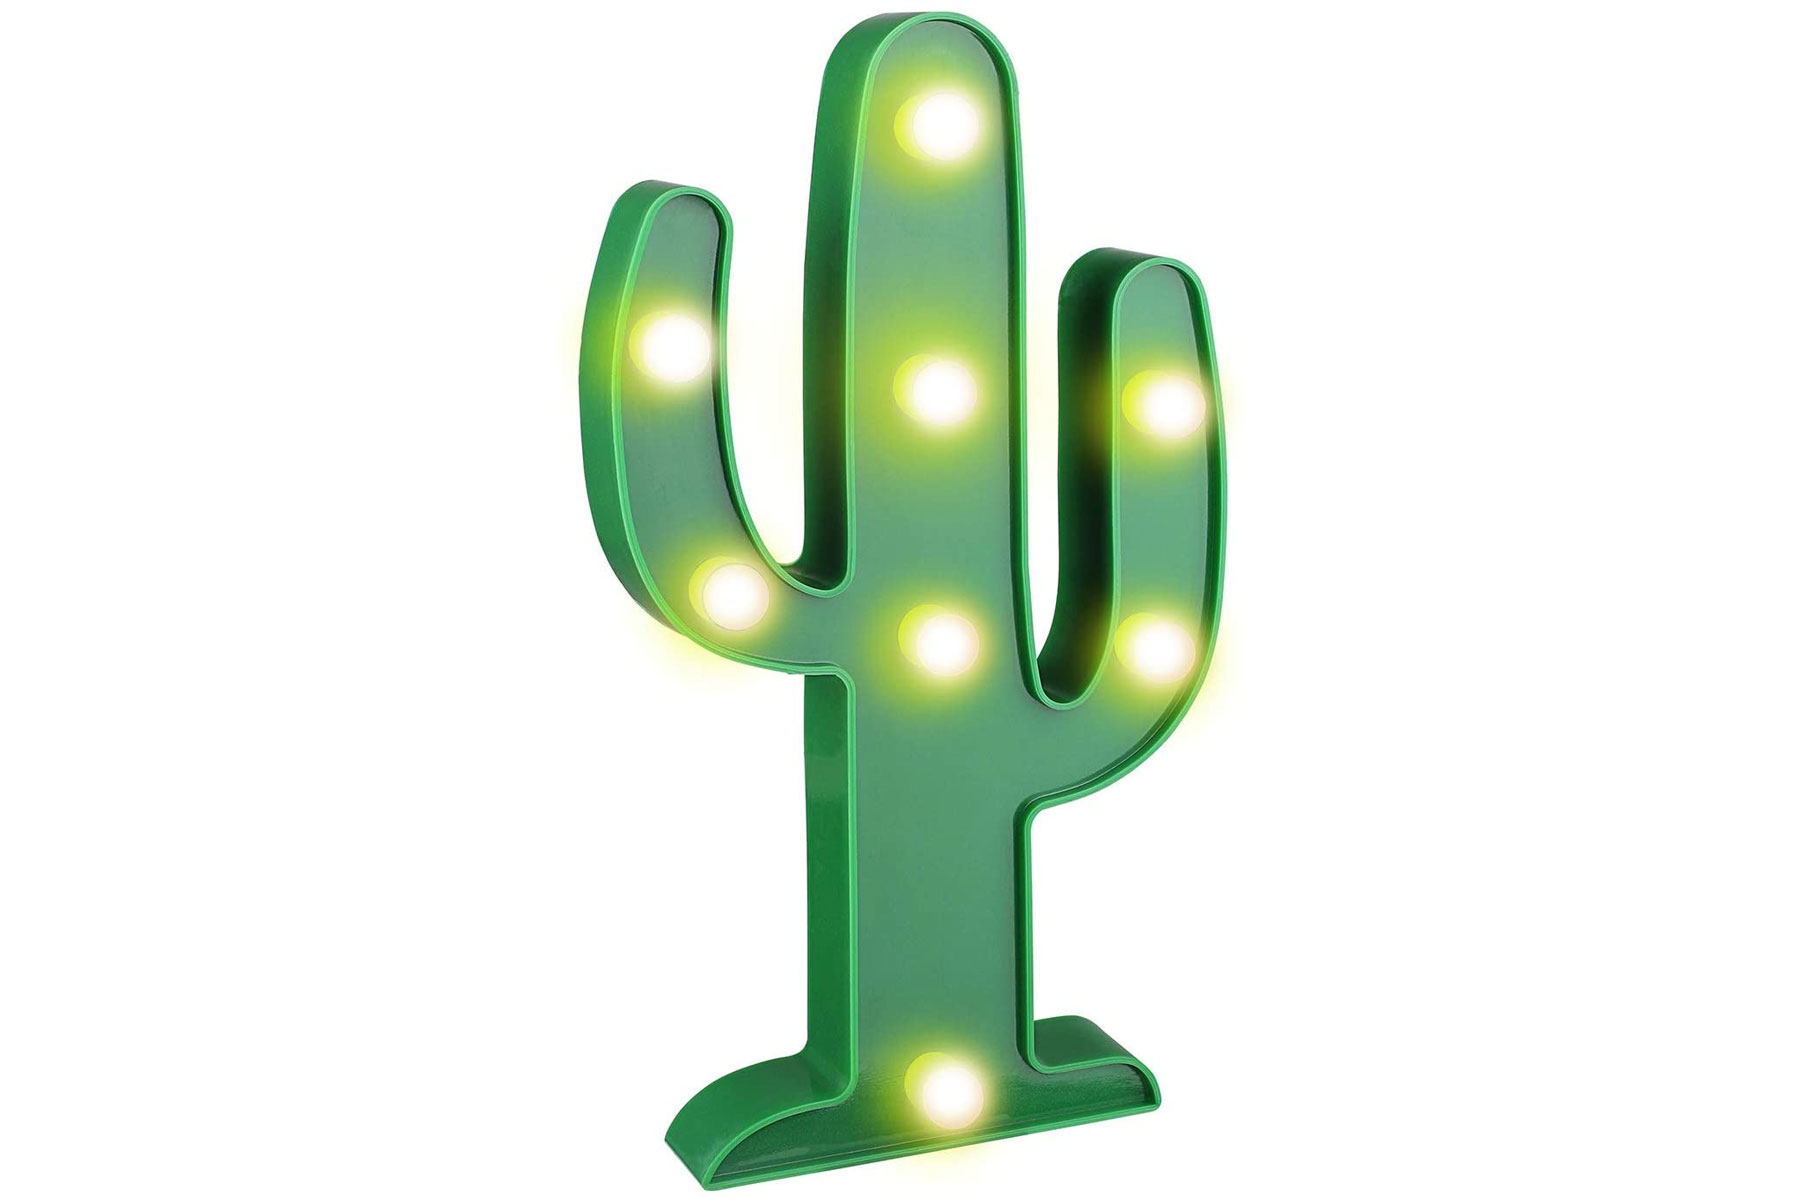 Green cactus shaped lamp